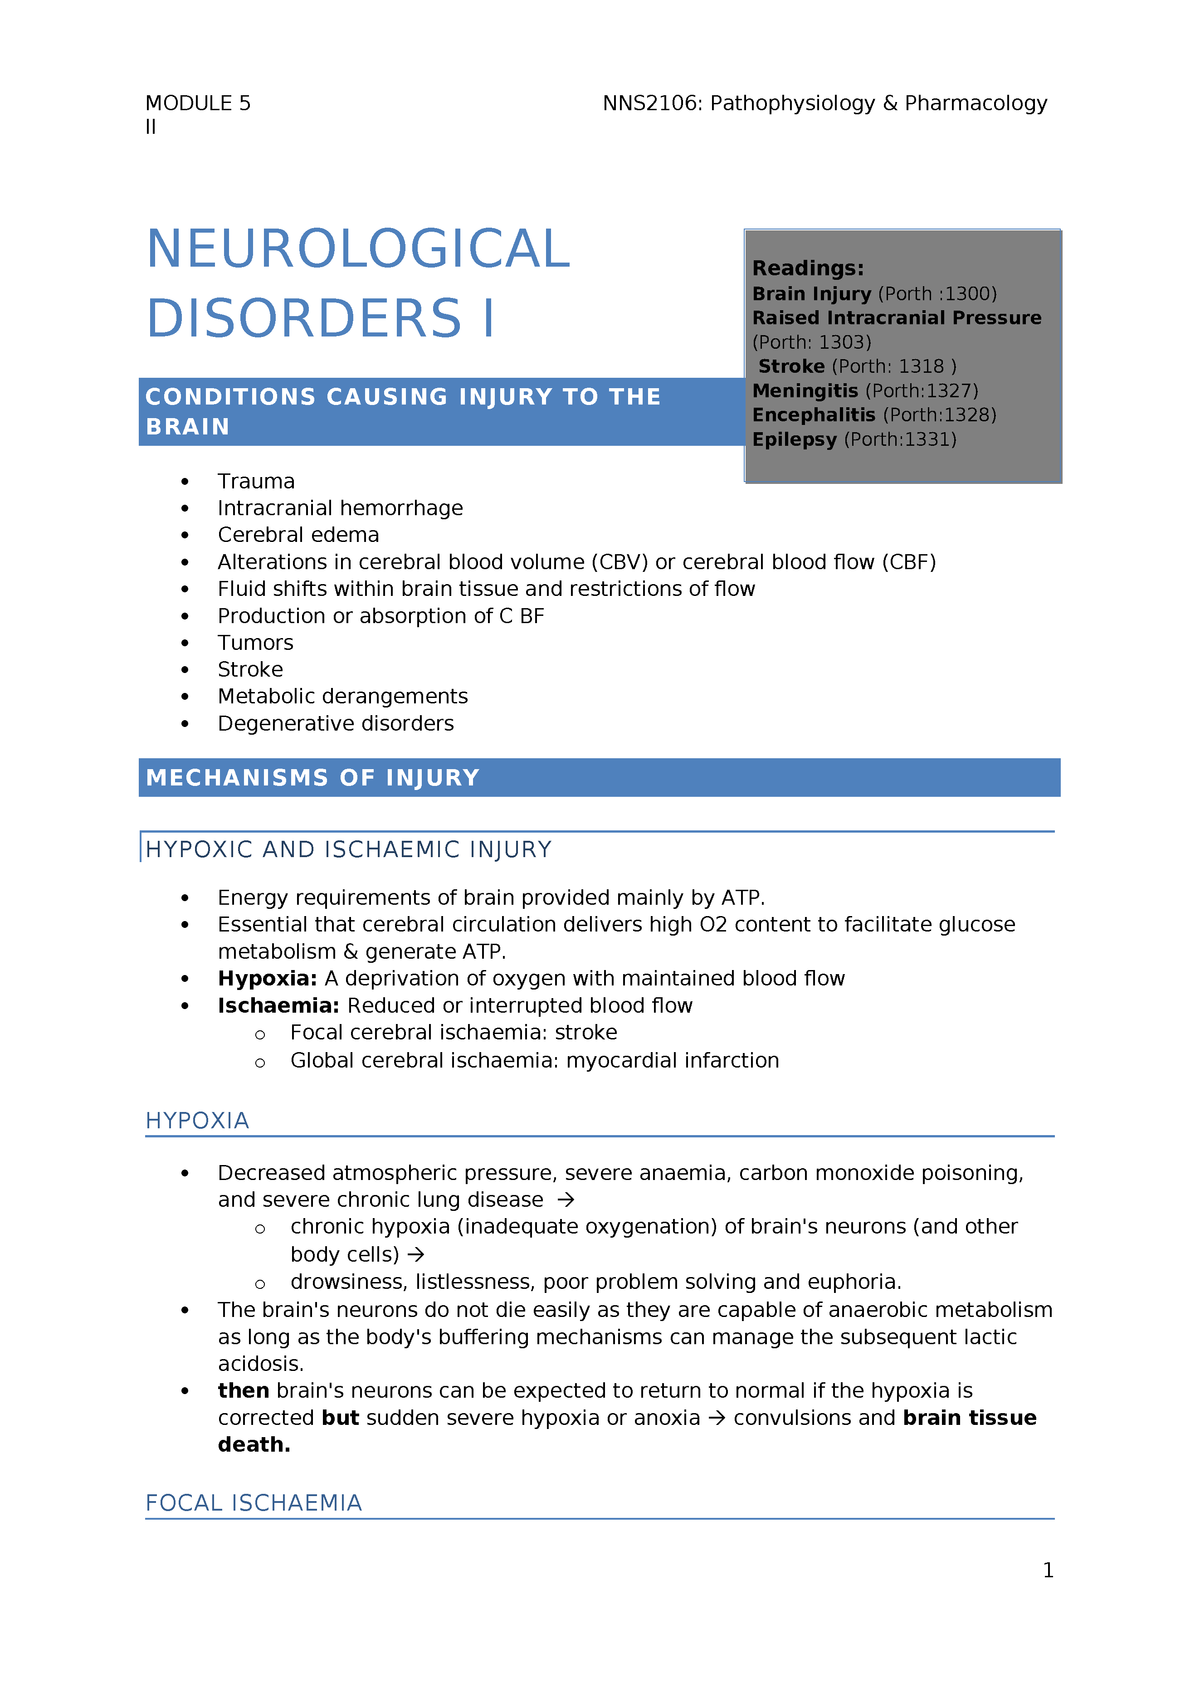 Lecture notes, Module 5, Neurological Disorders I - NNS2106